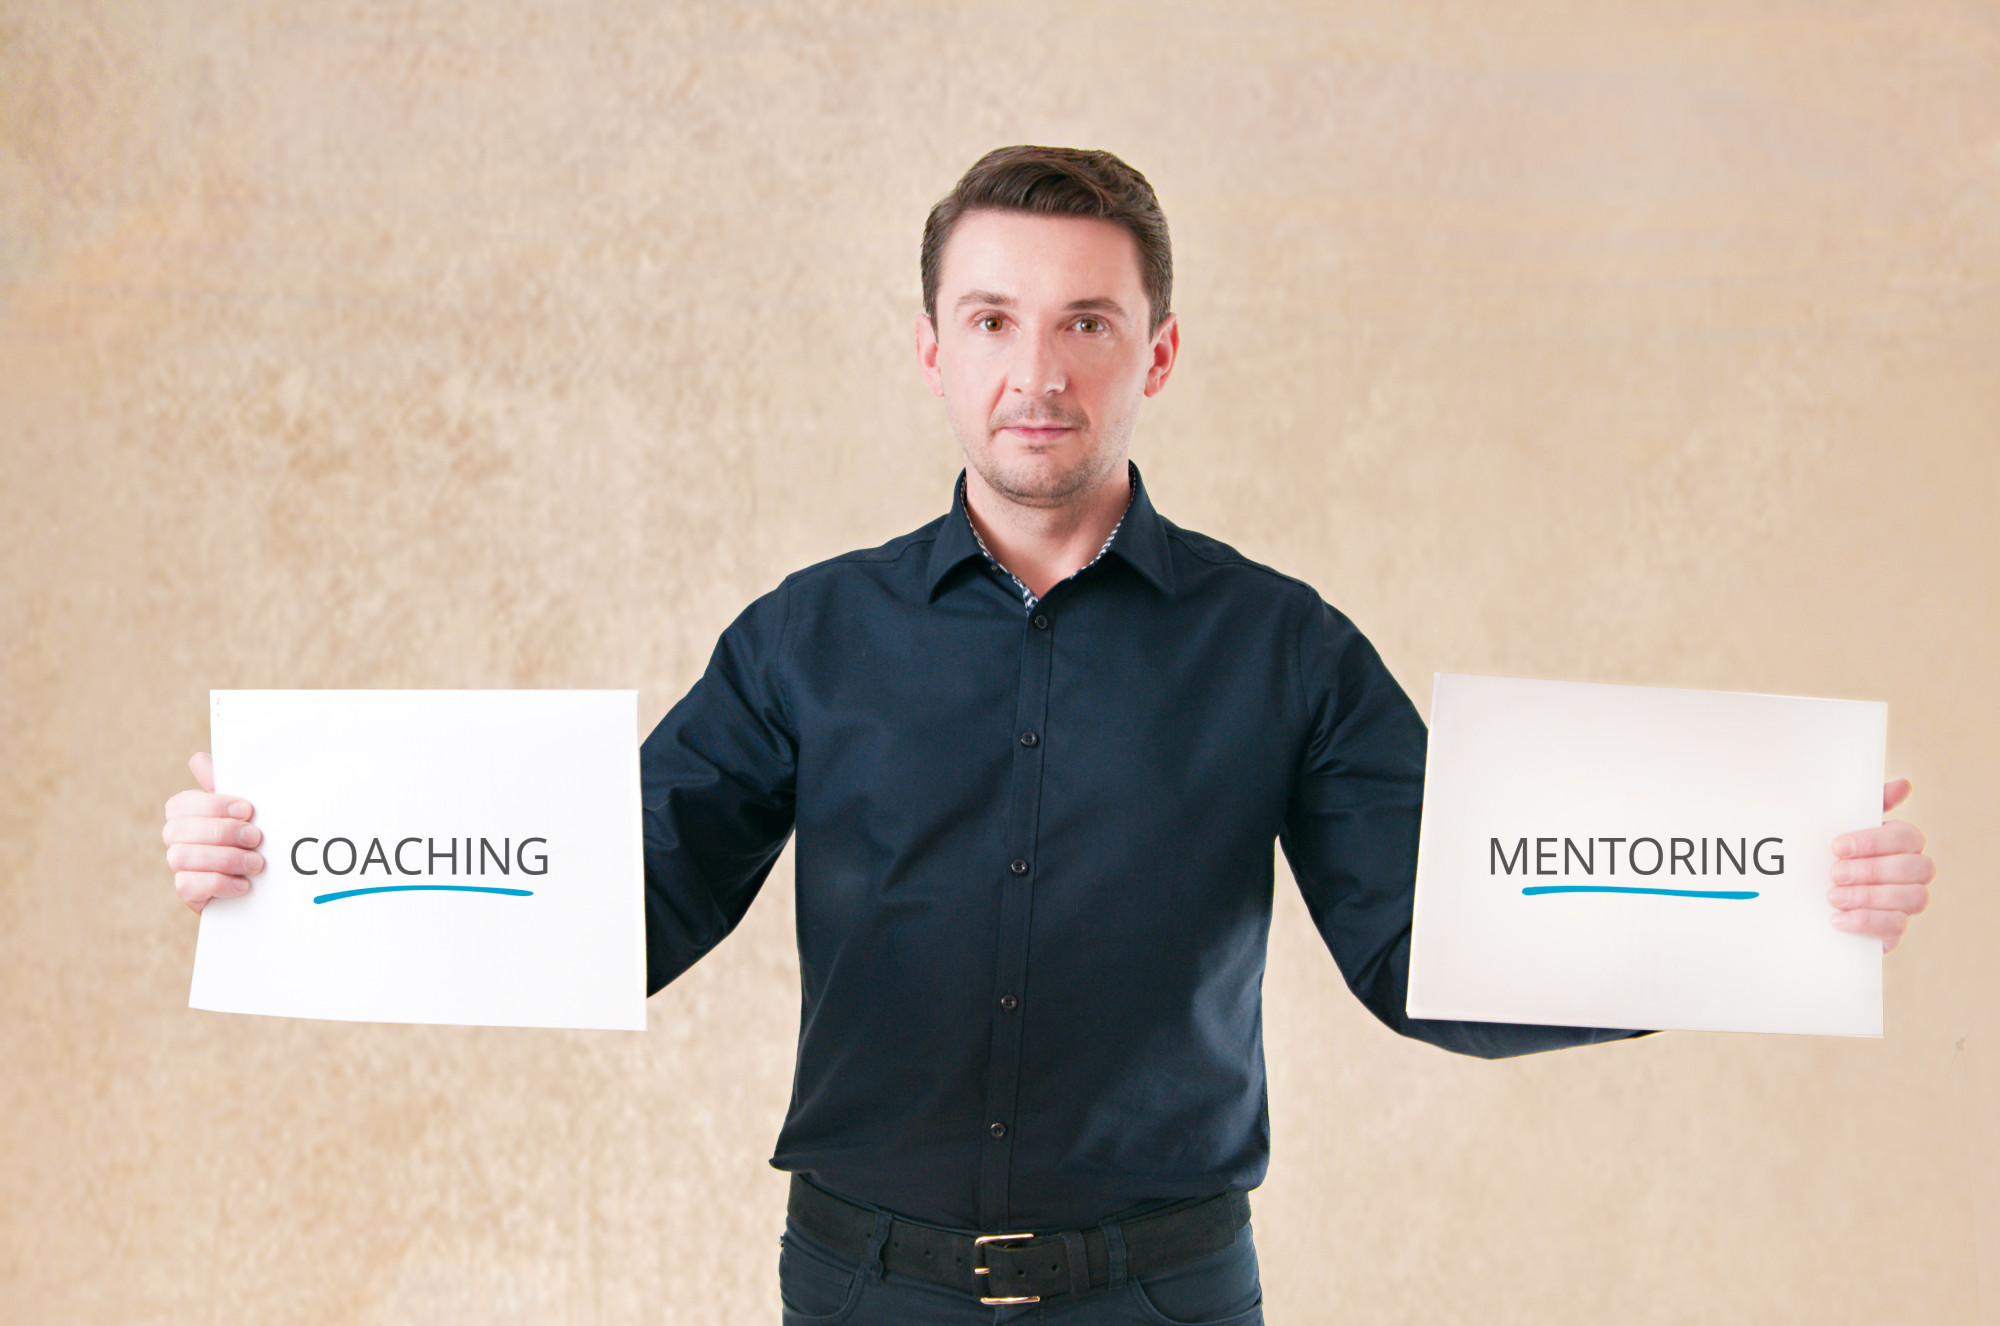 couching-mentoring